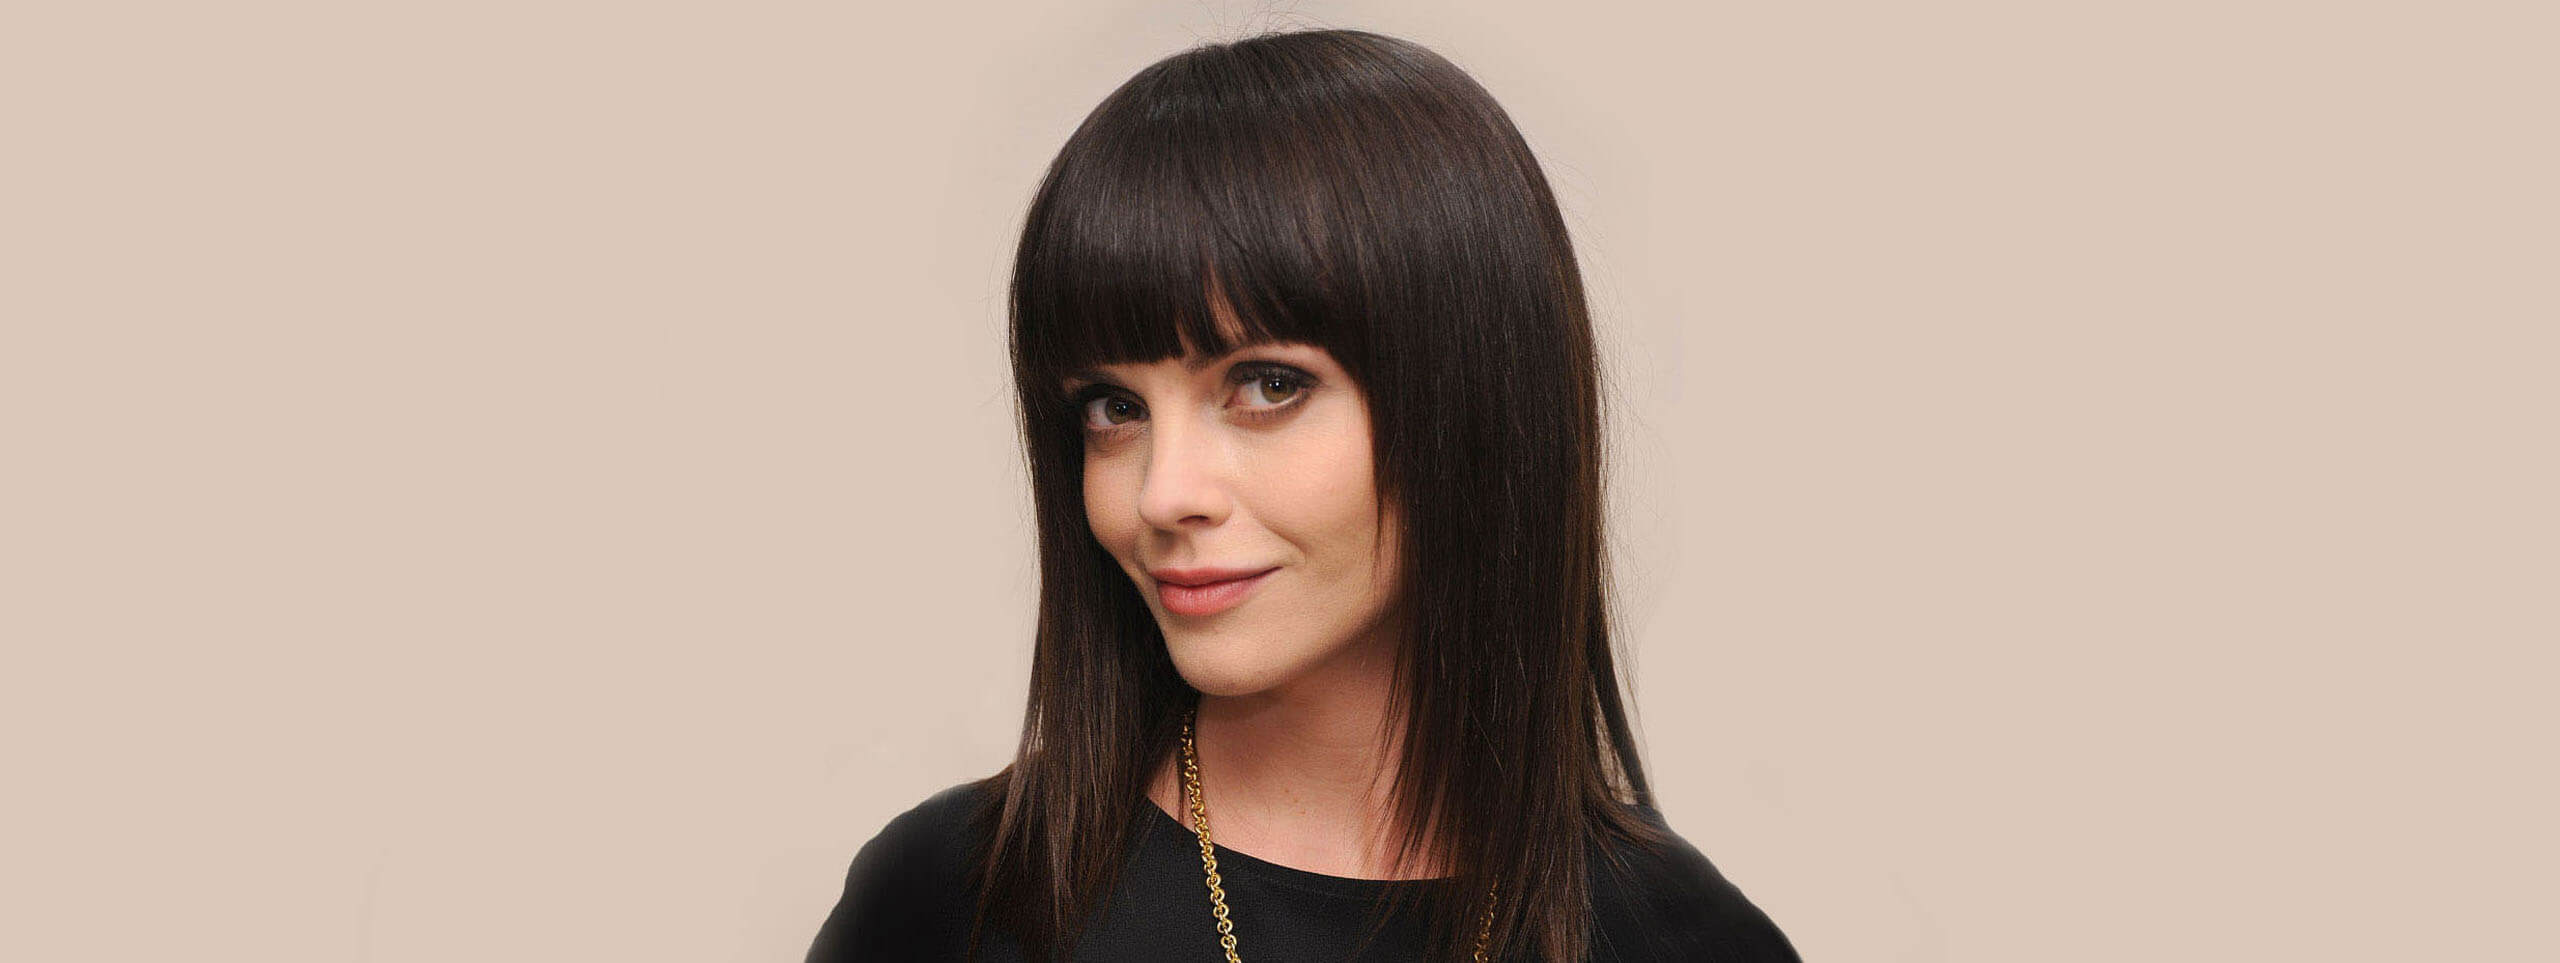 Model with a straight fringe hairstyle and bangs